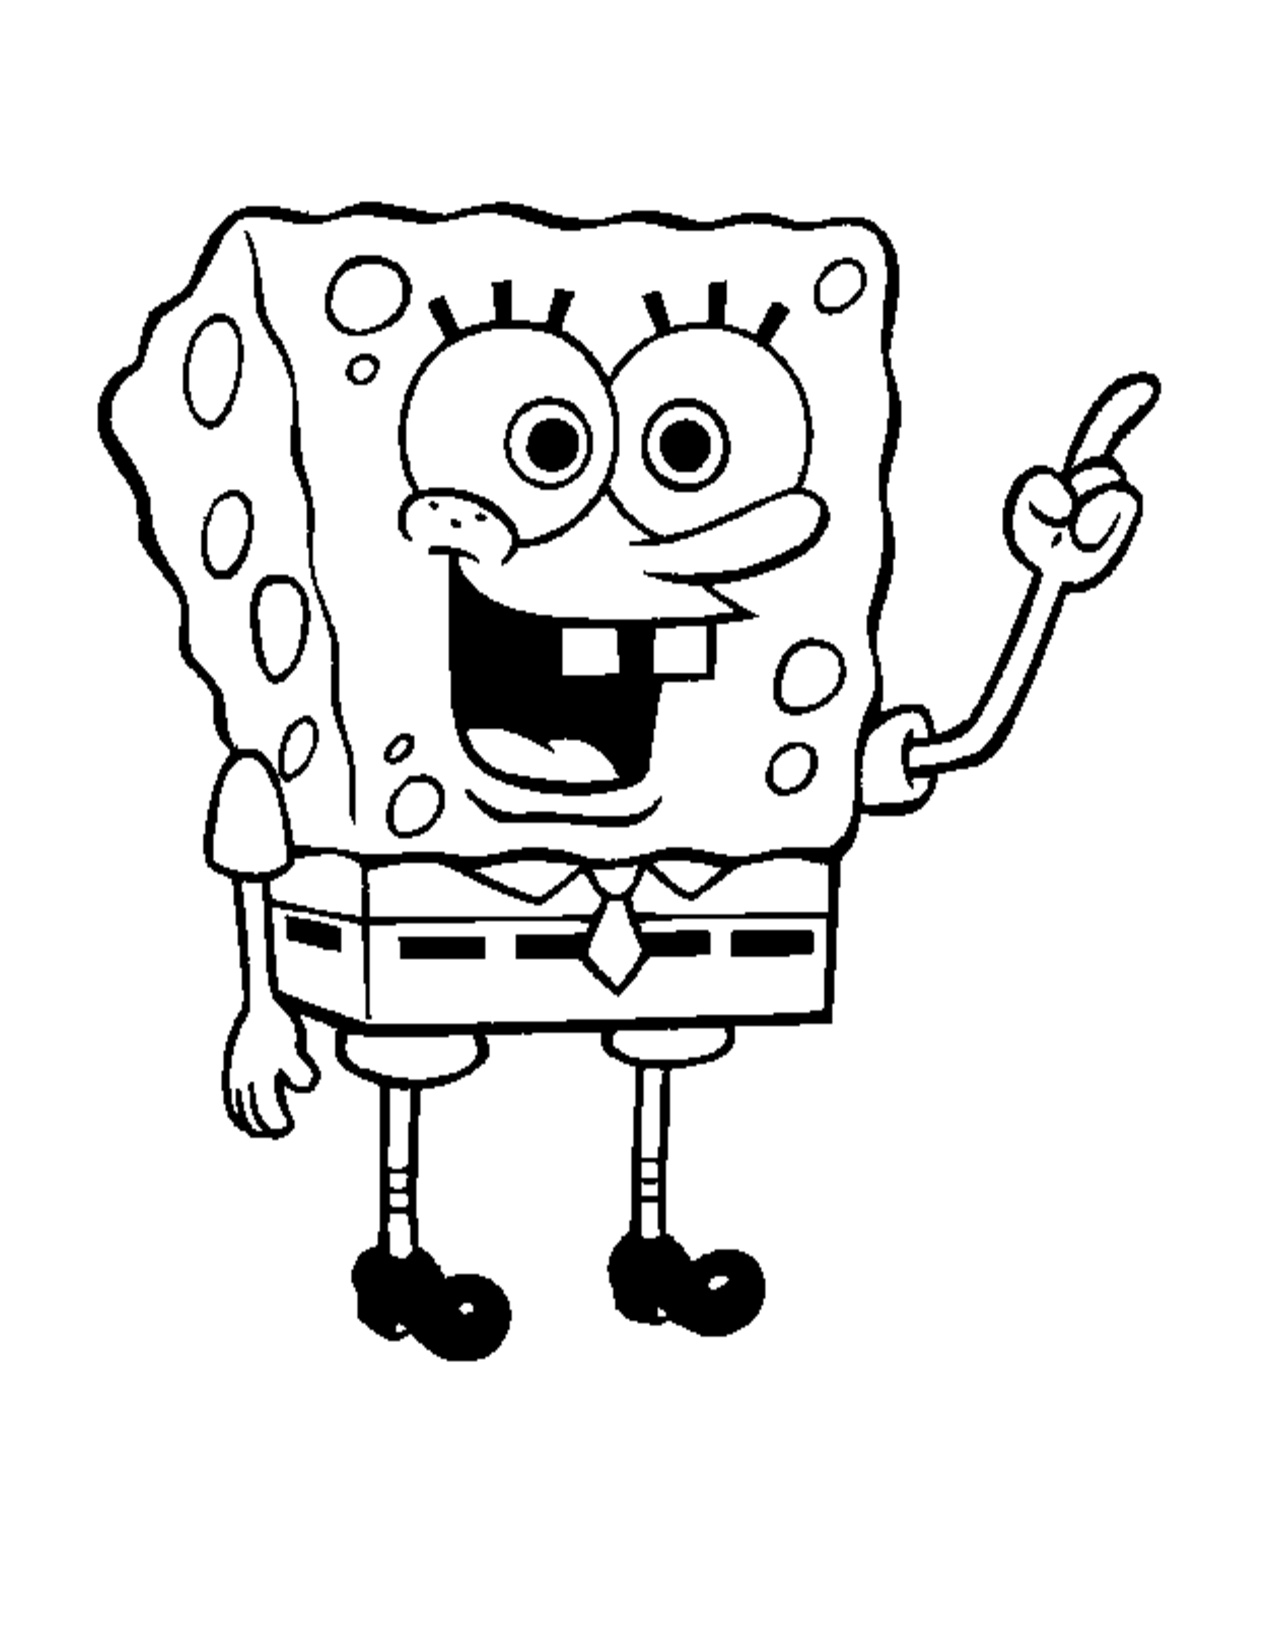 spongebob coloring sheets | Sponge-Bob-57 | Animals | Pinterest ...